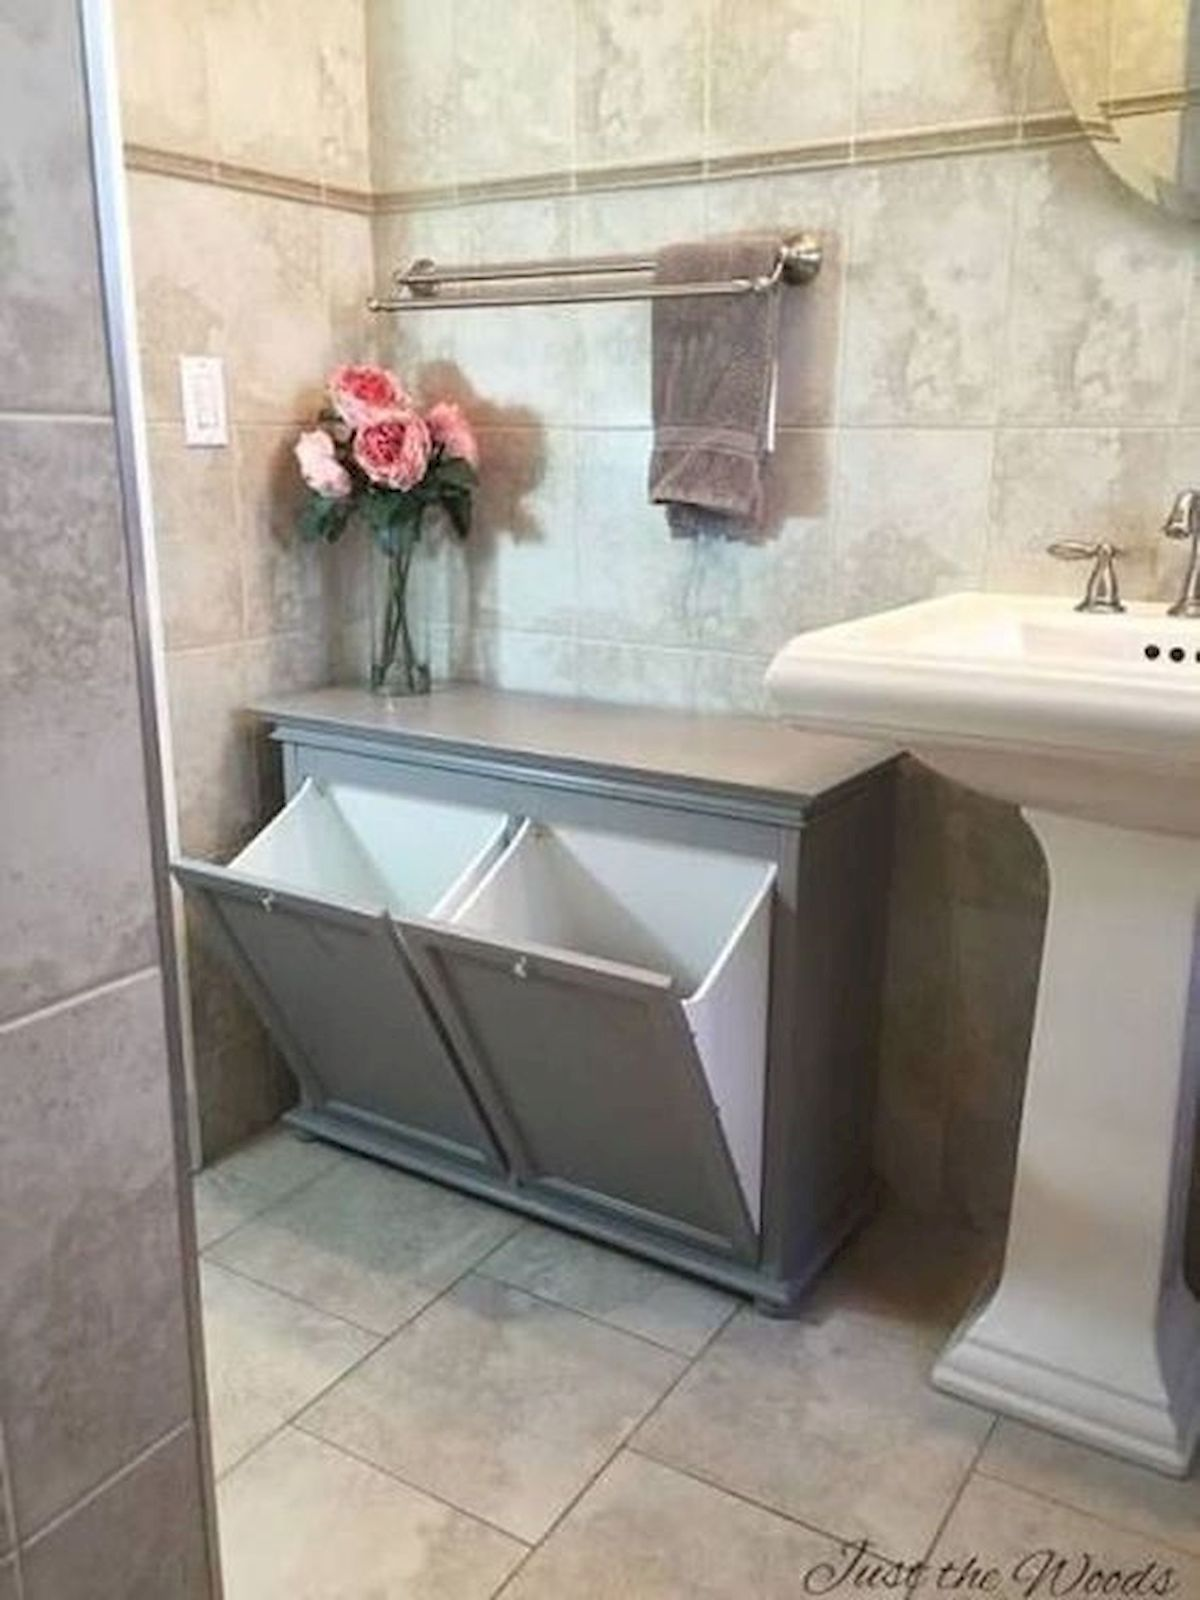 50 Best DIY Storage Design Ideas to Maximize Your Small Bathroom Space (36)